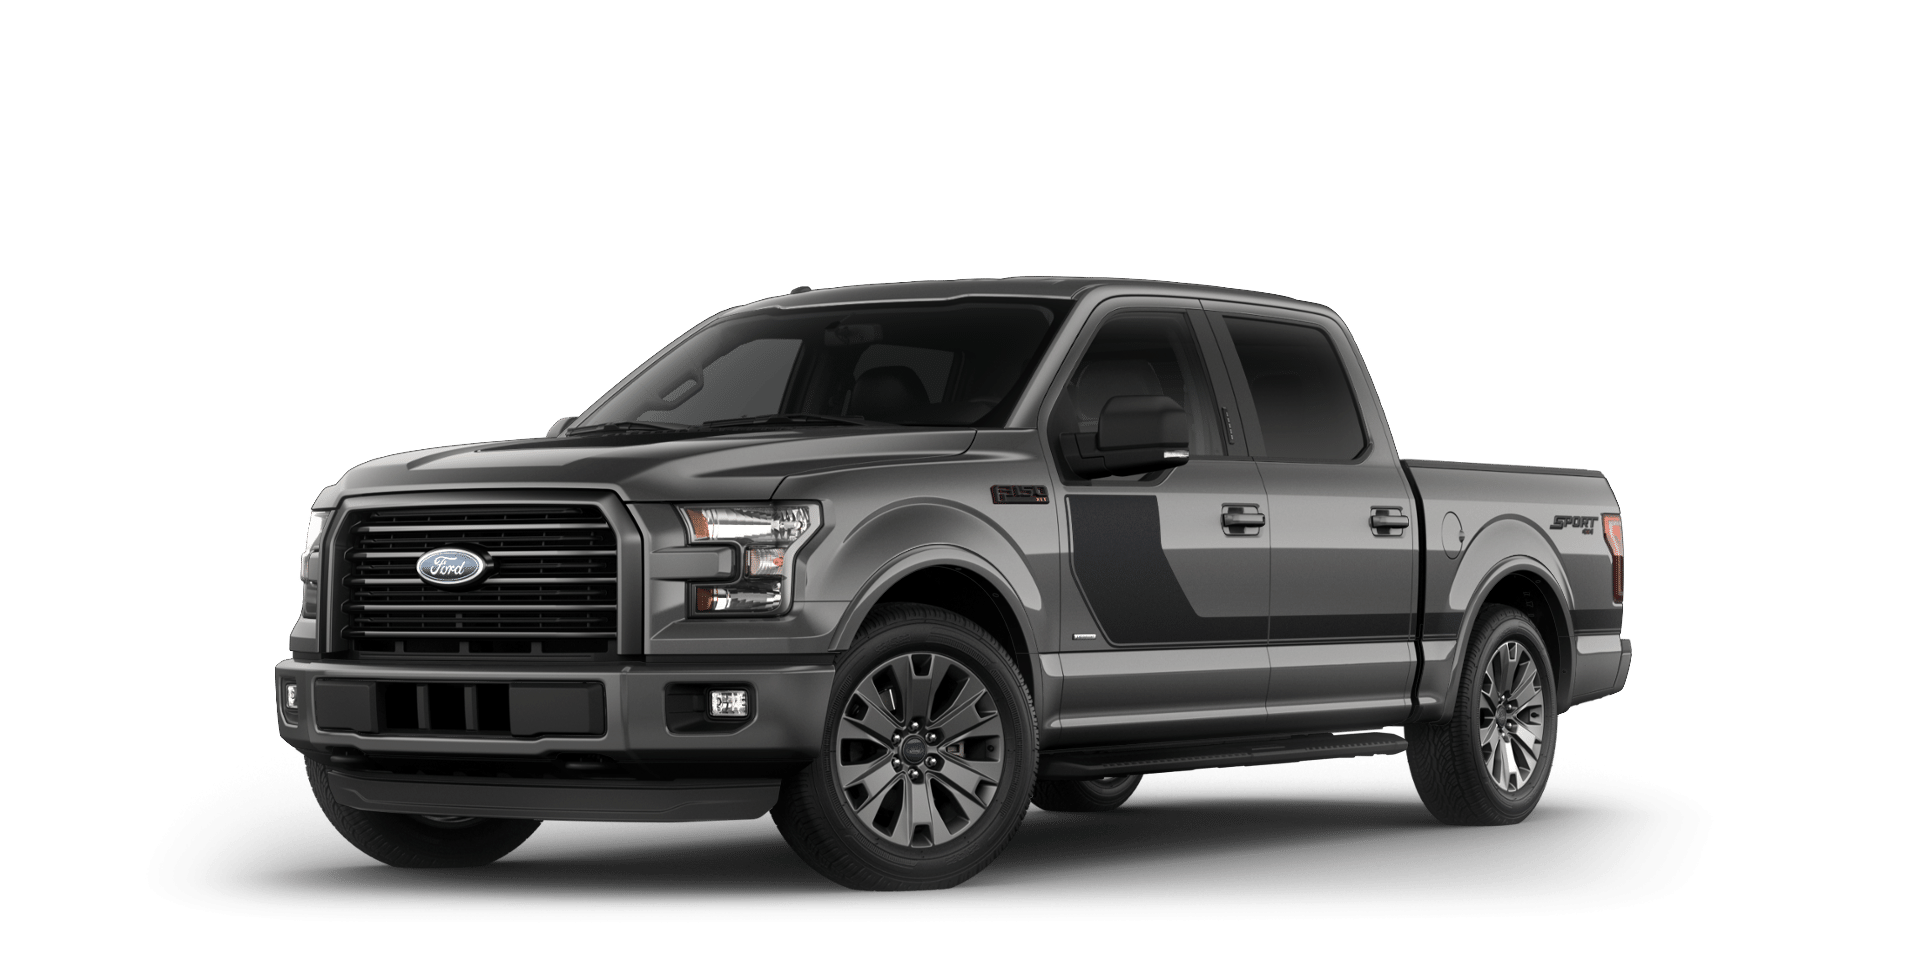 2017 ford f-150 png. New f xlt sport